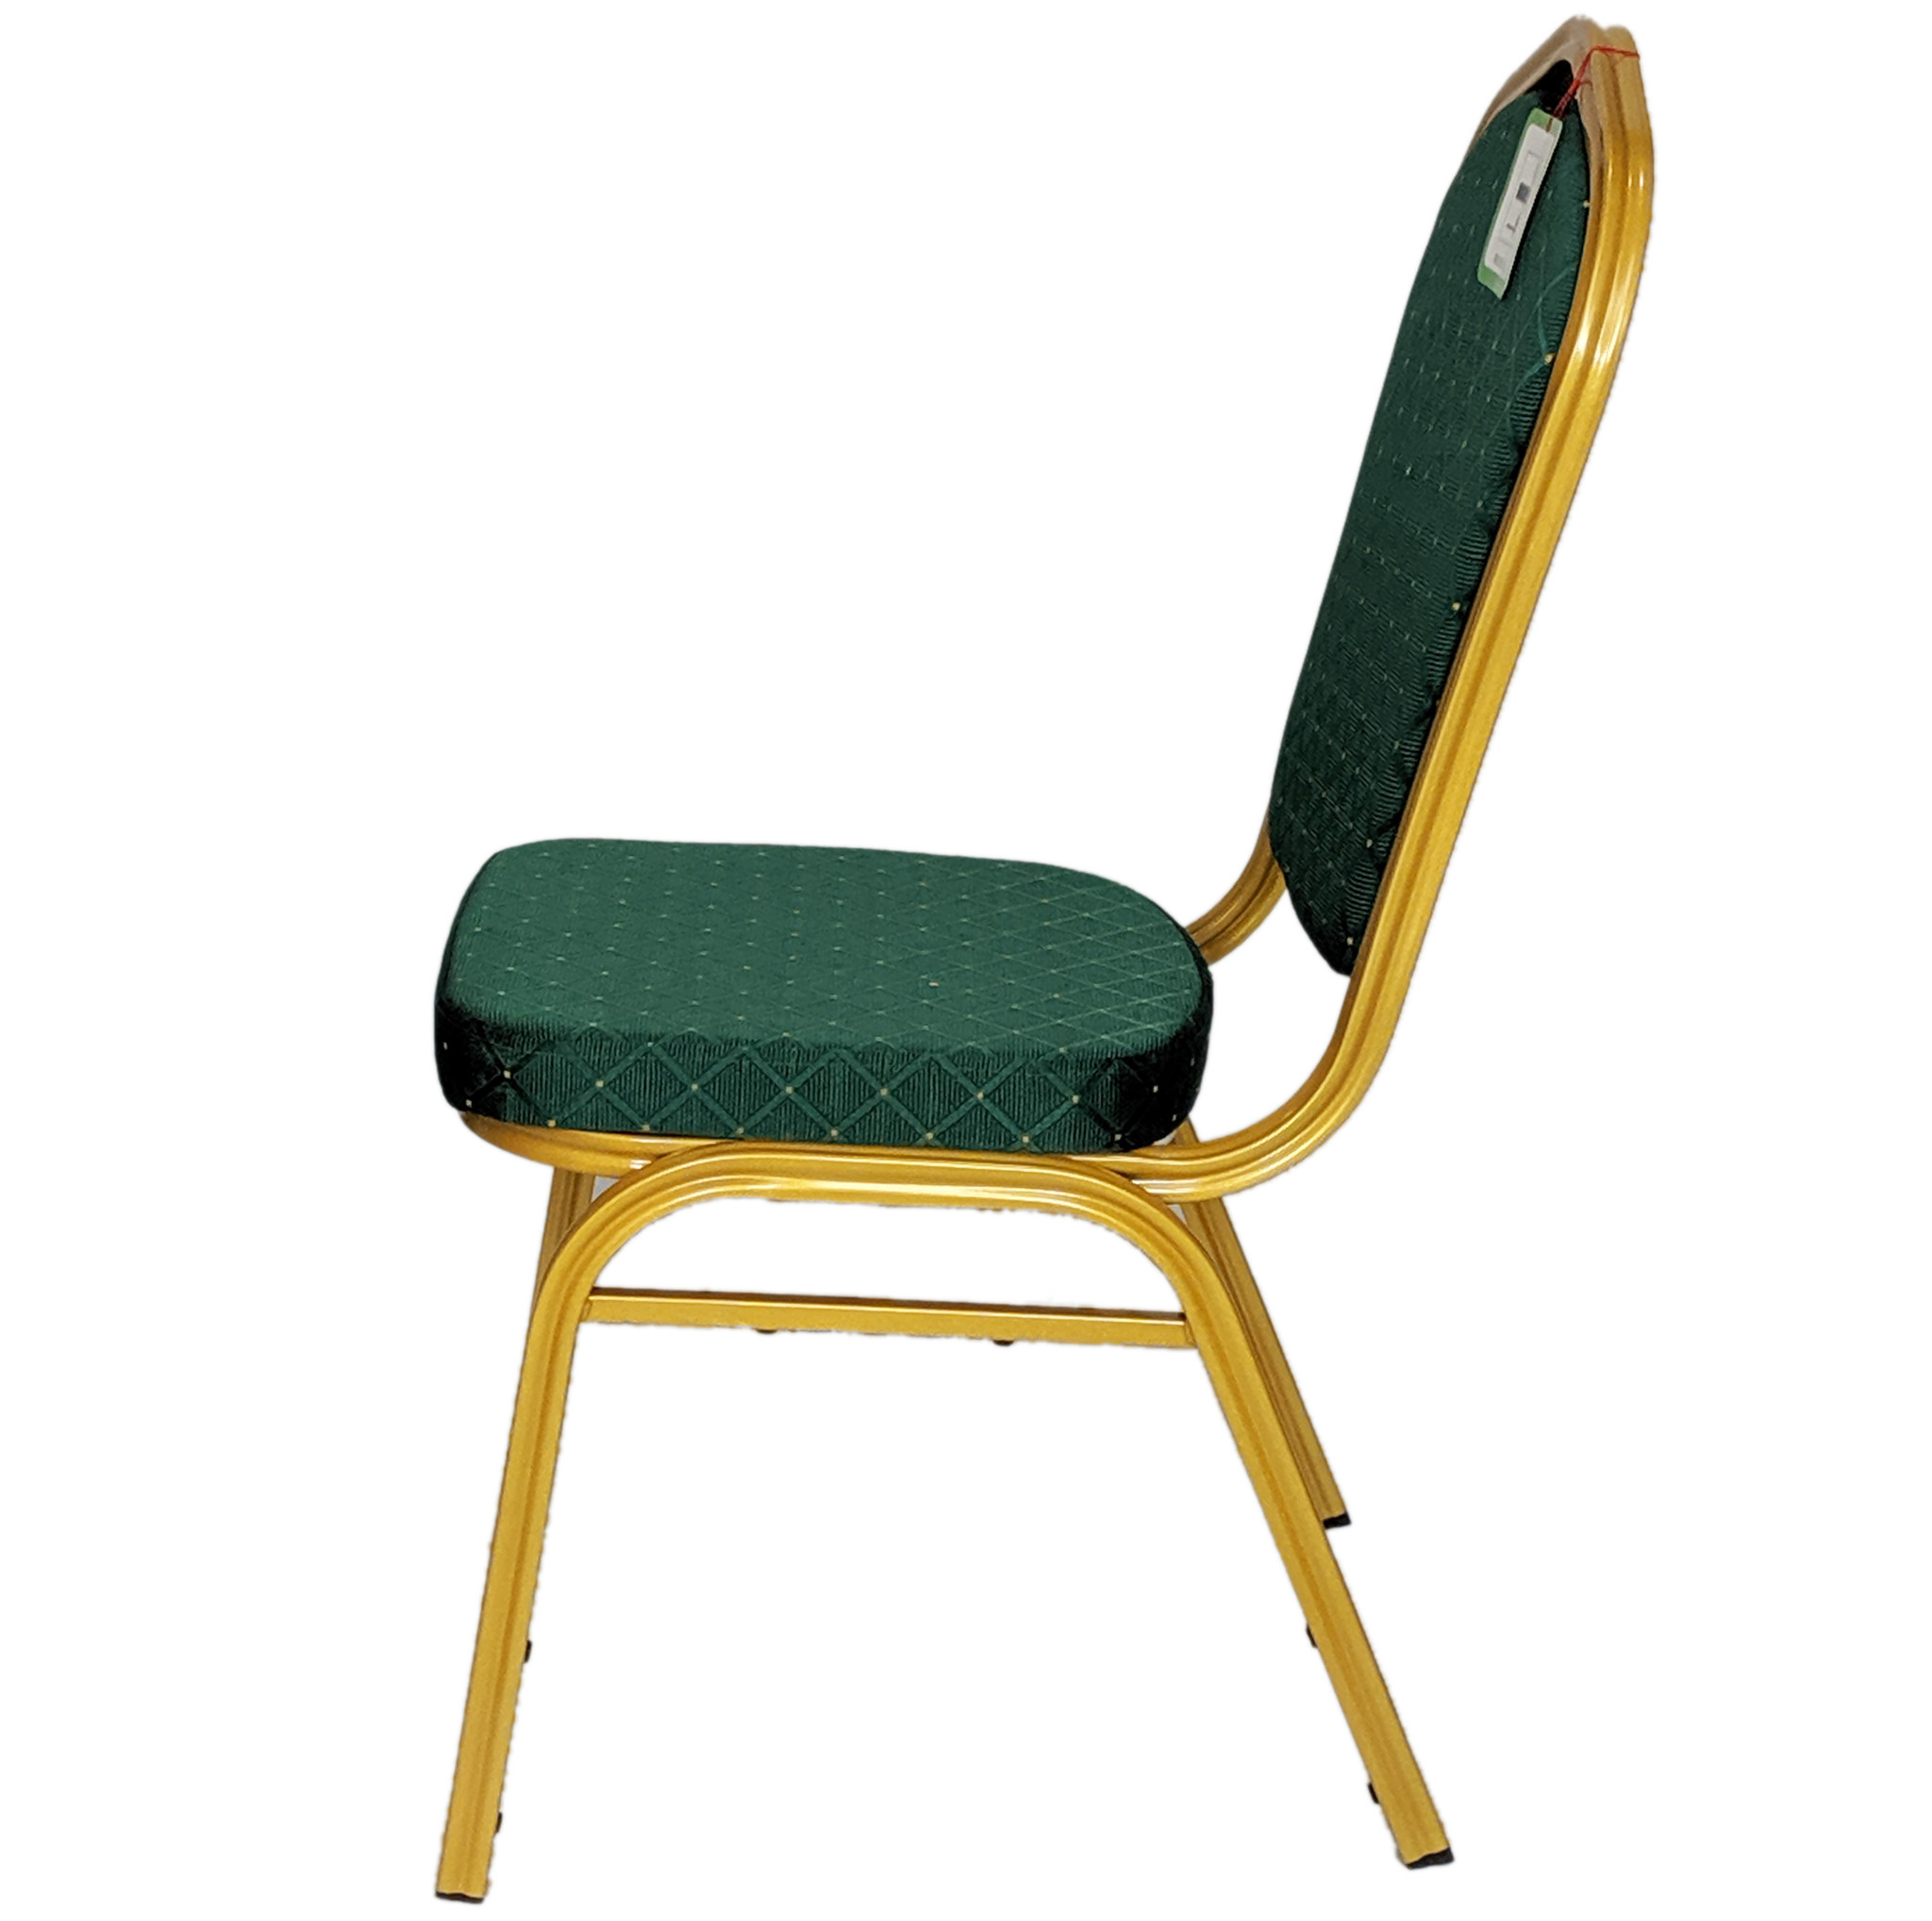 Green Gold Banqueting Restaurant Metal Stacking Conference Chairs